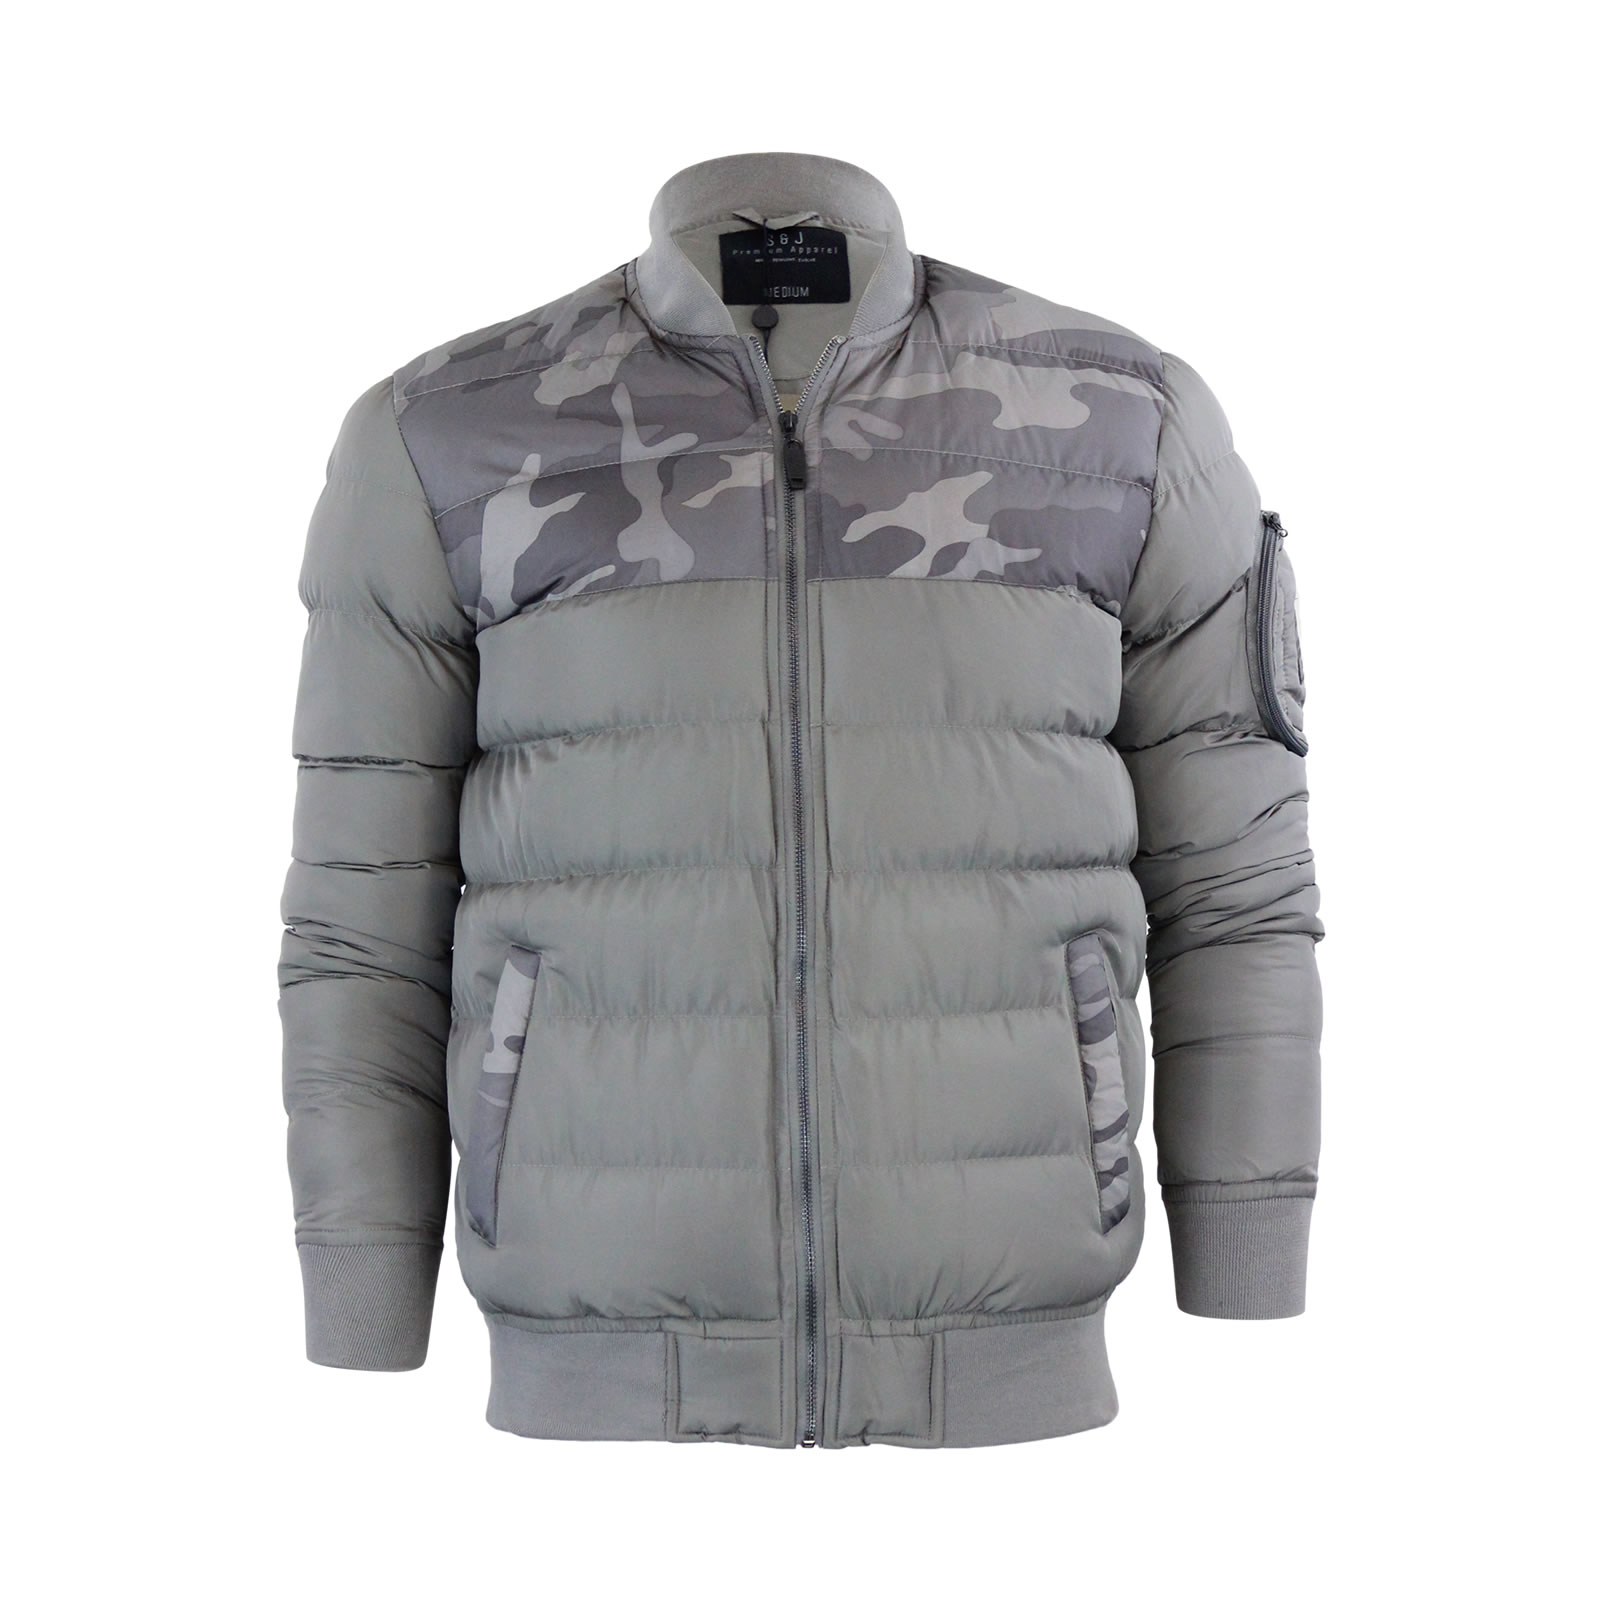 fcad3be2f Details about Mens Jacket Smith & Jones Stavkirke Camo Panel Bubble Puffer  Coat